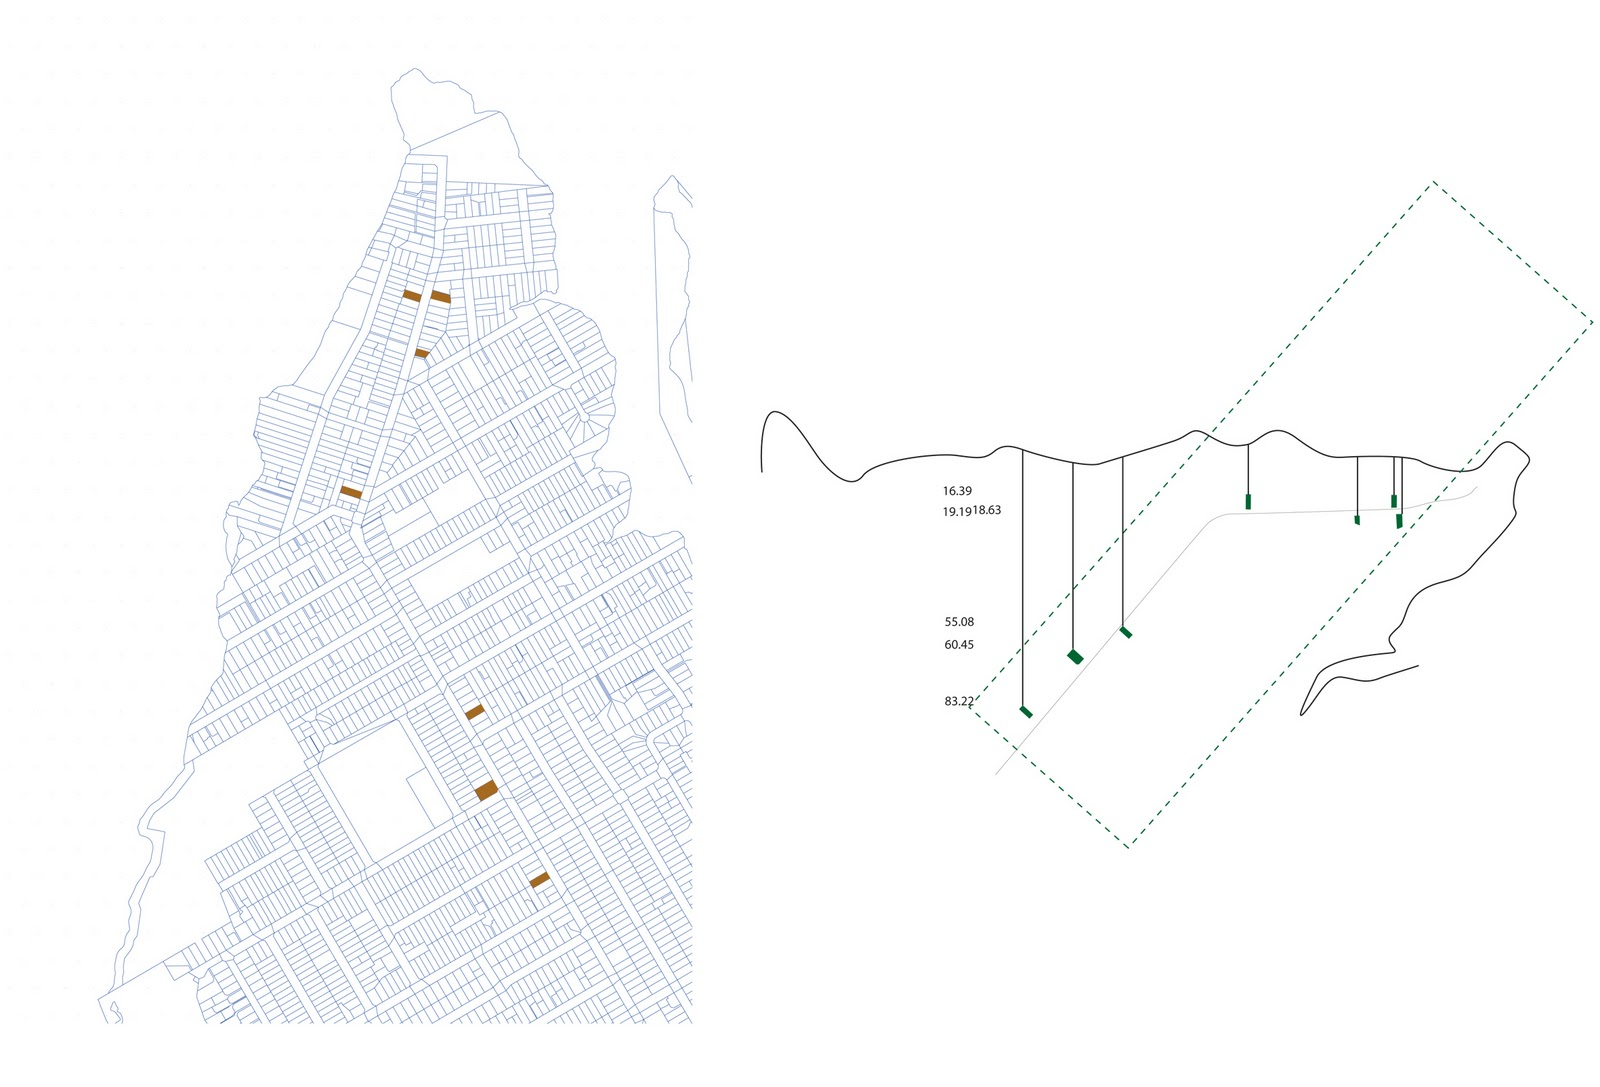 theaquajournal: Mapping out data to find distances